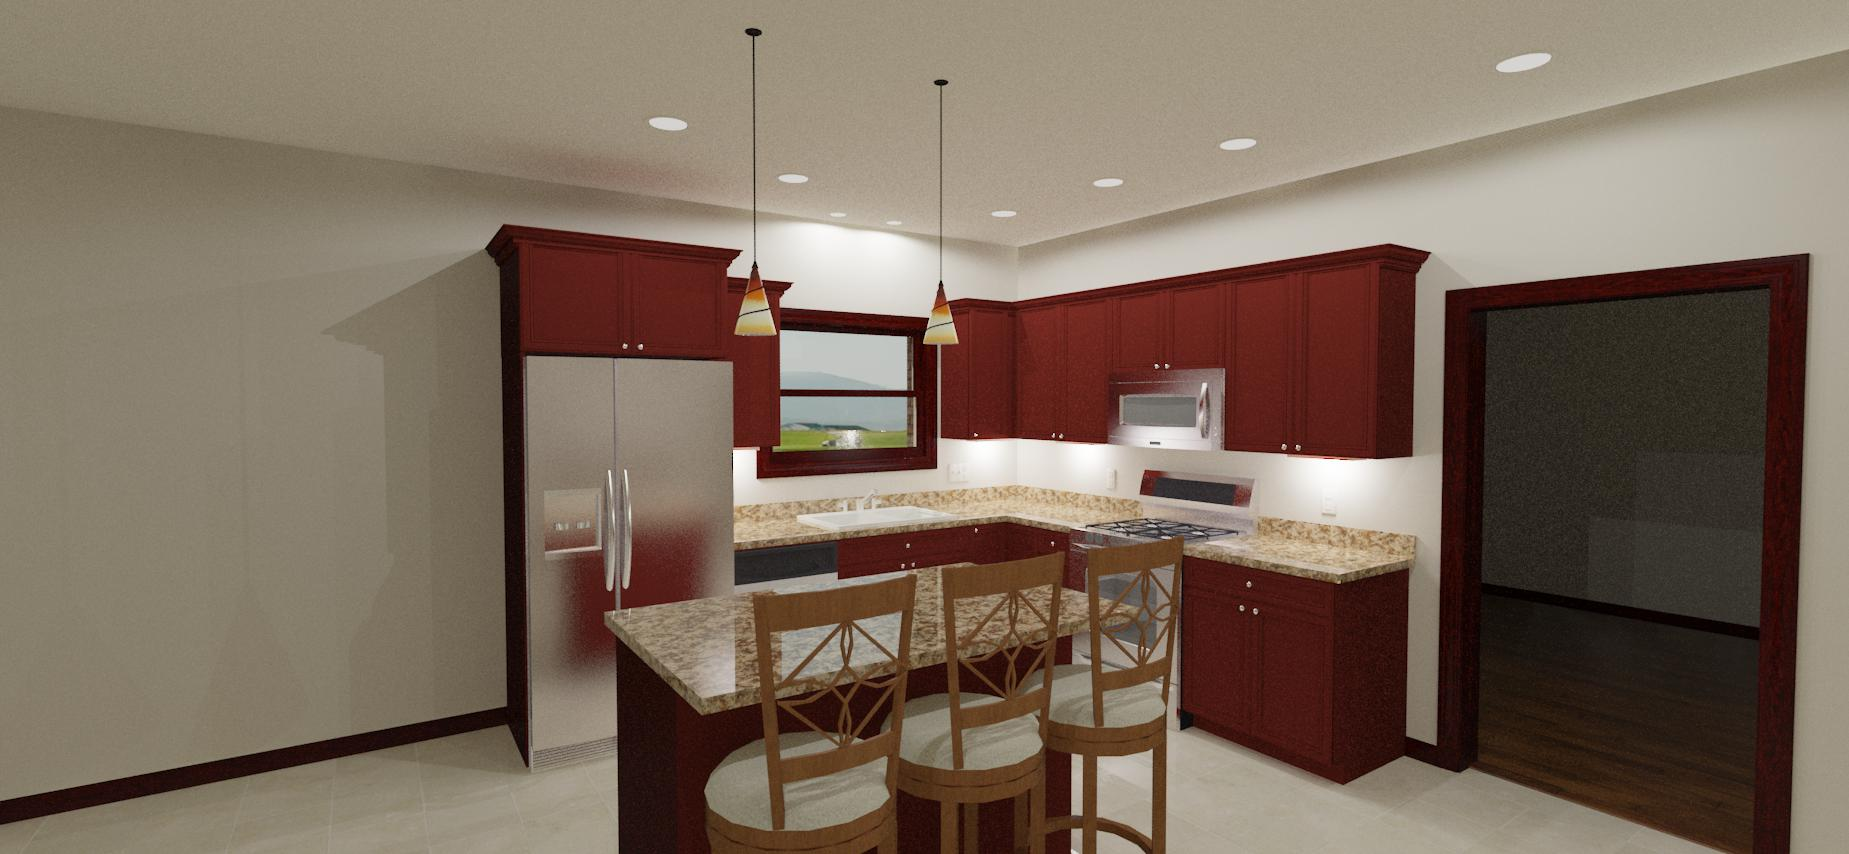 new kitchen recessed lighting layout recessed lighting kitchen New Kitchen Recessed Lighting Layout 1